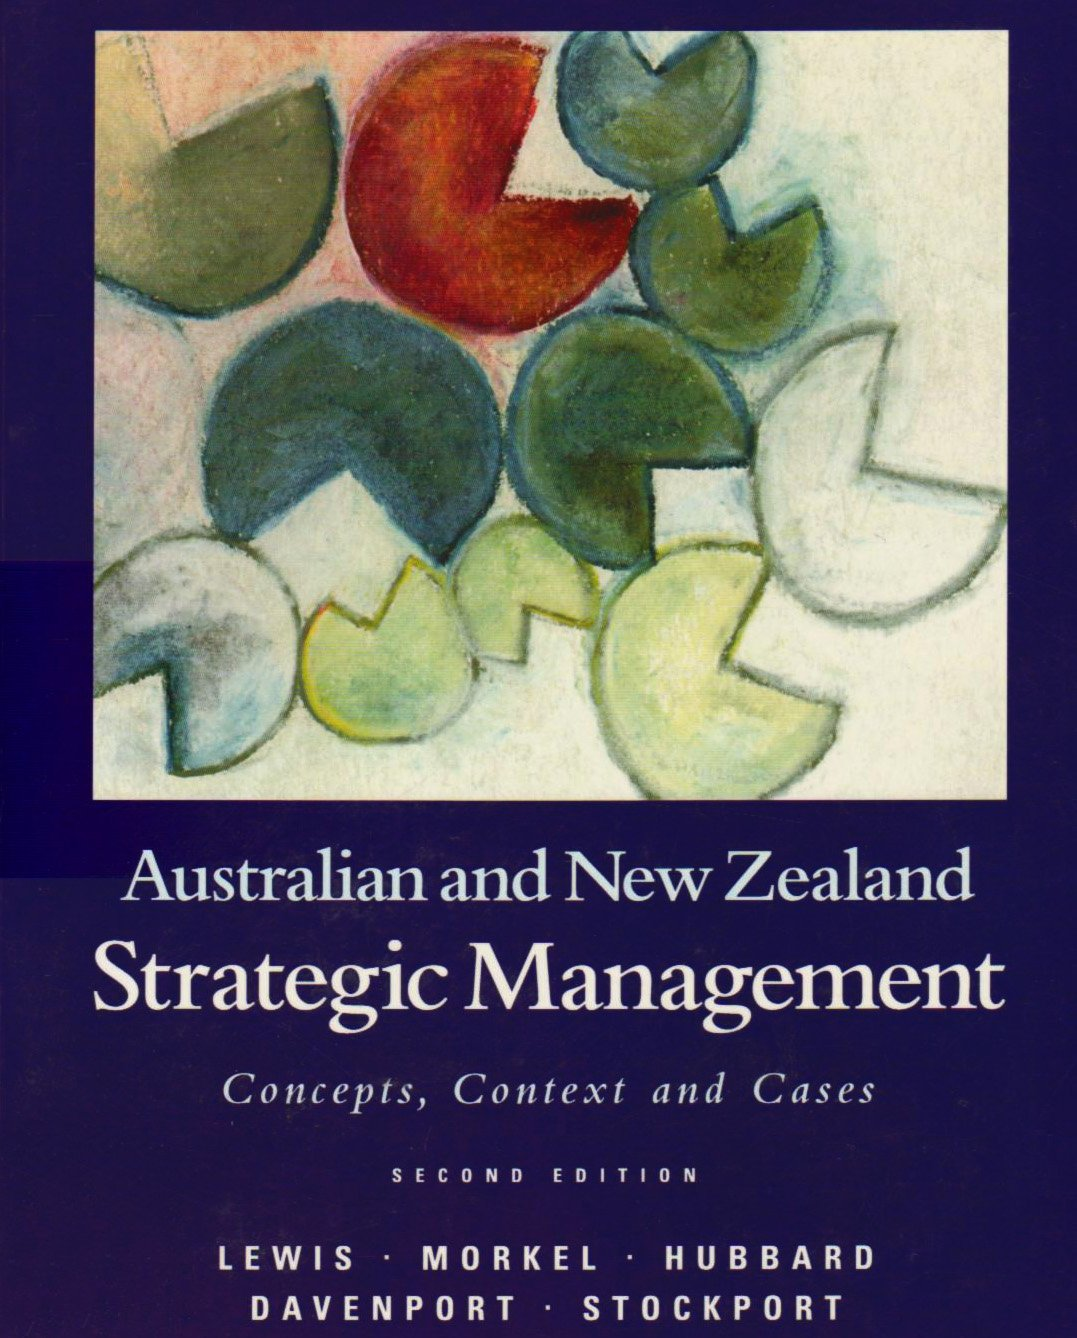 Australian and New Zealand Strategic Management: Concepts, Context and Cases